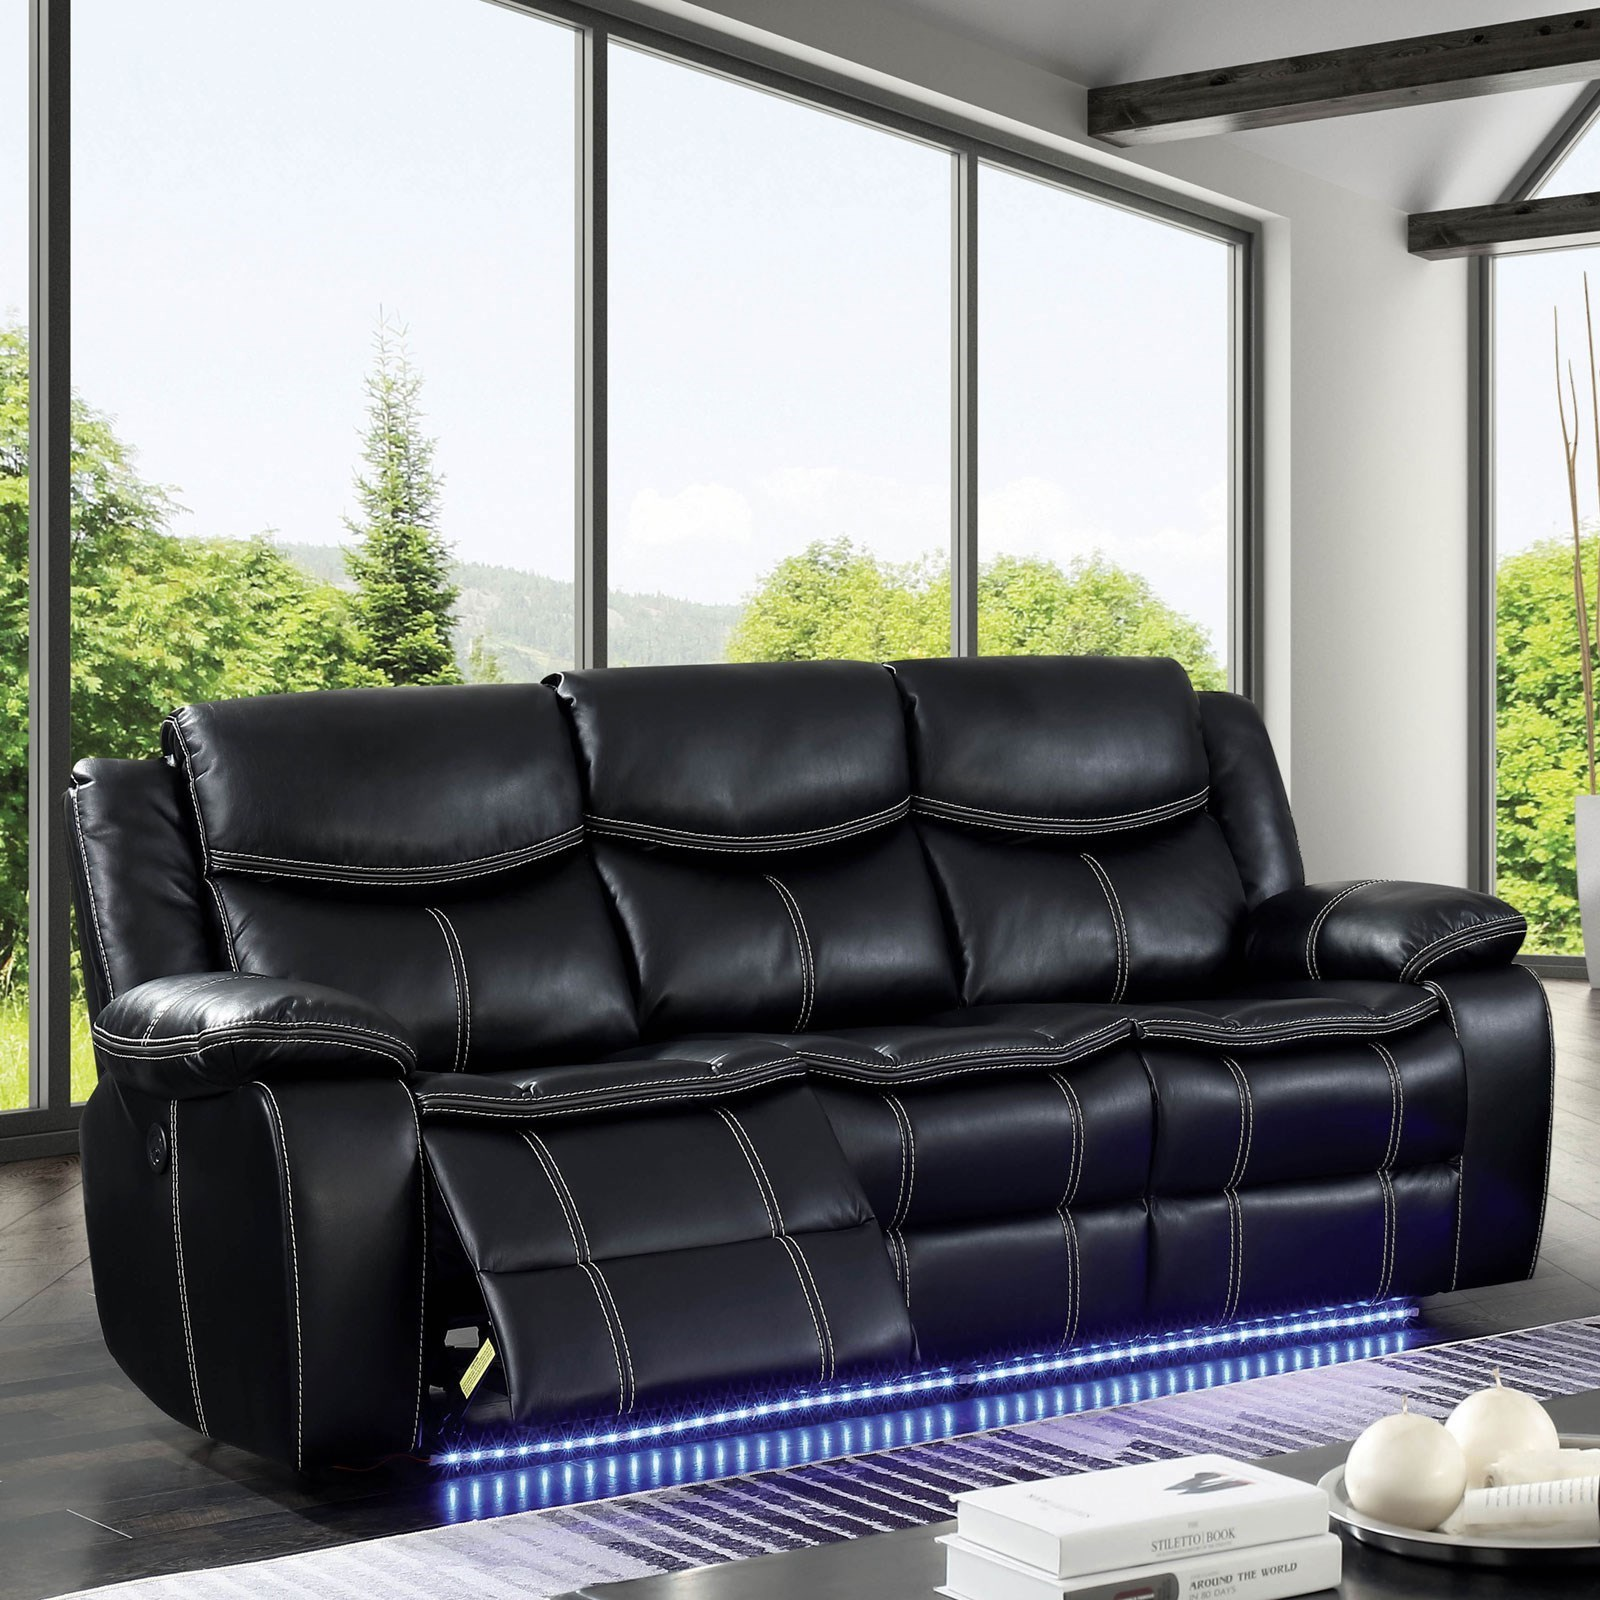 Sofa Led Sirius Contemporary Power Reclining Sofa With Led Lighting By Furniture Of America At Rooms For Less